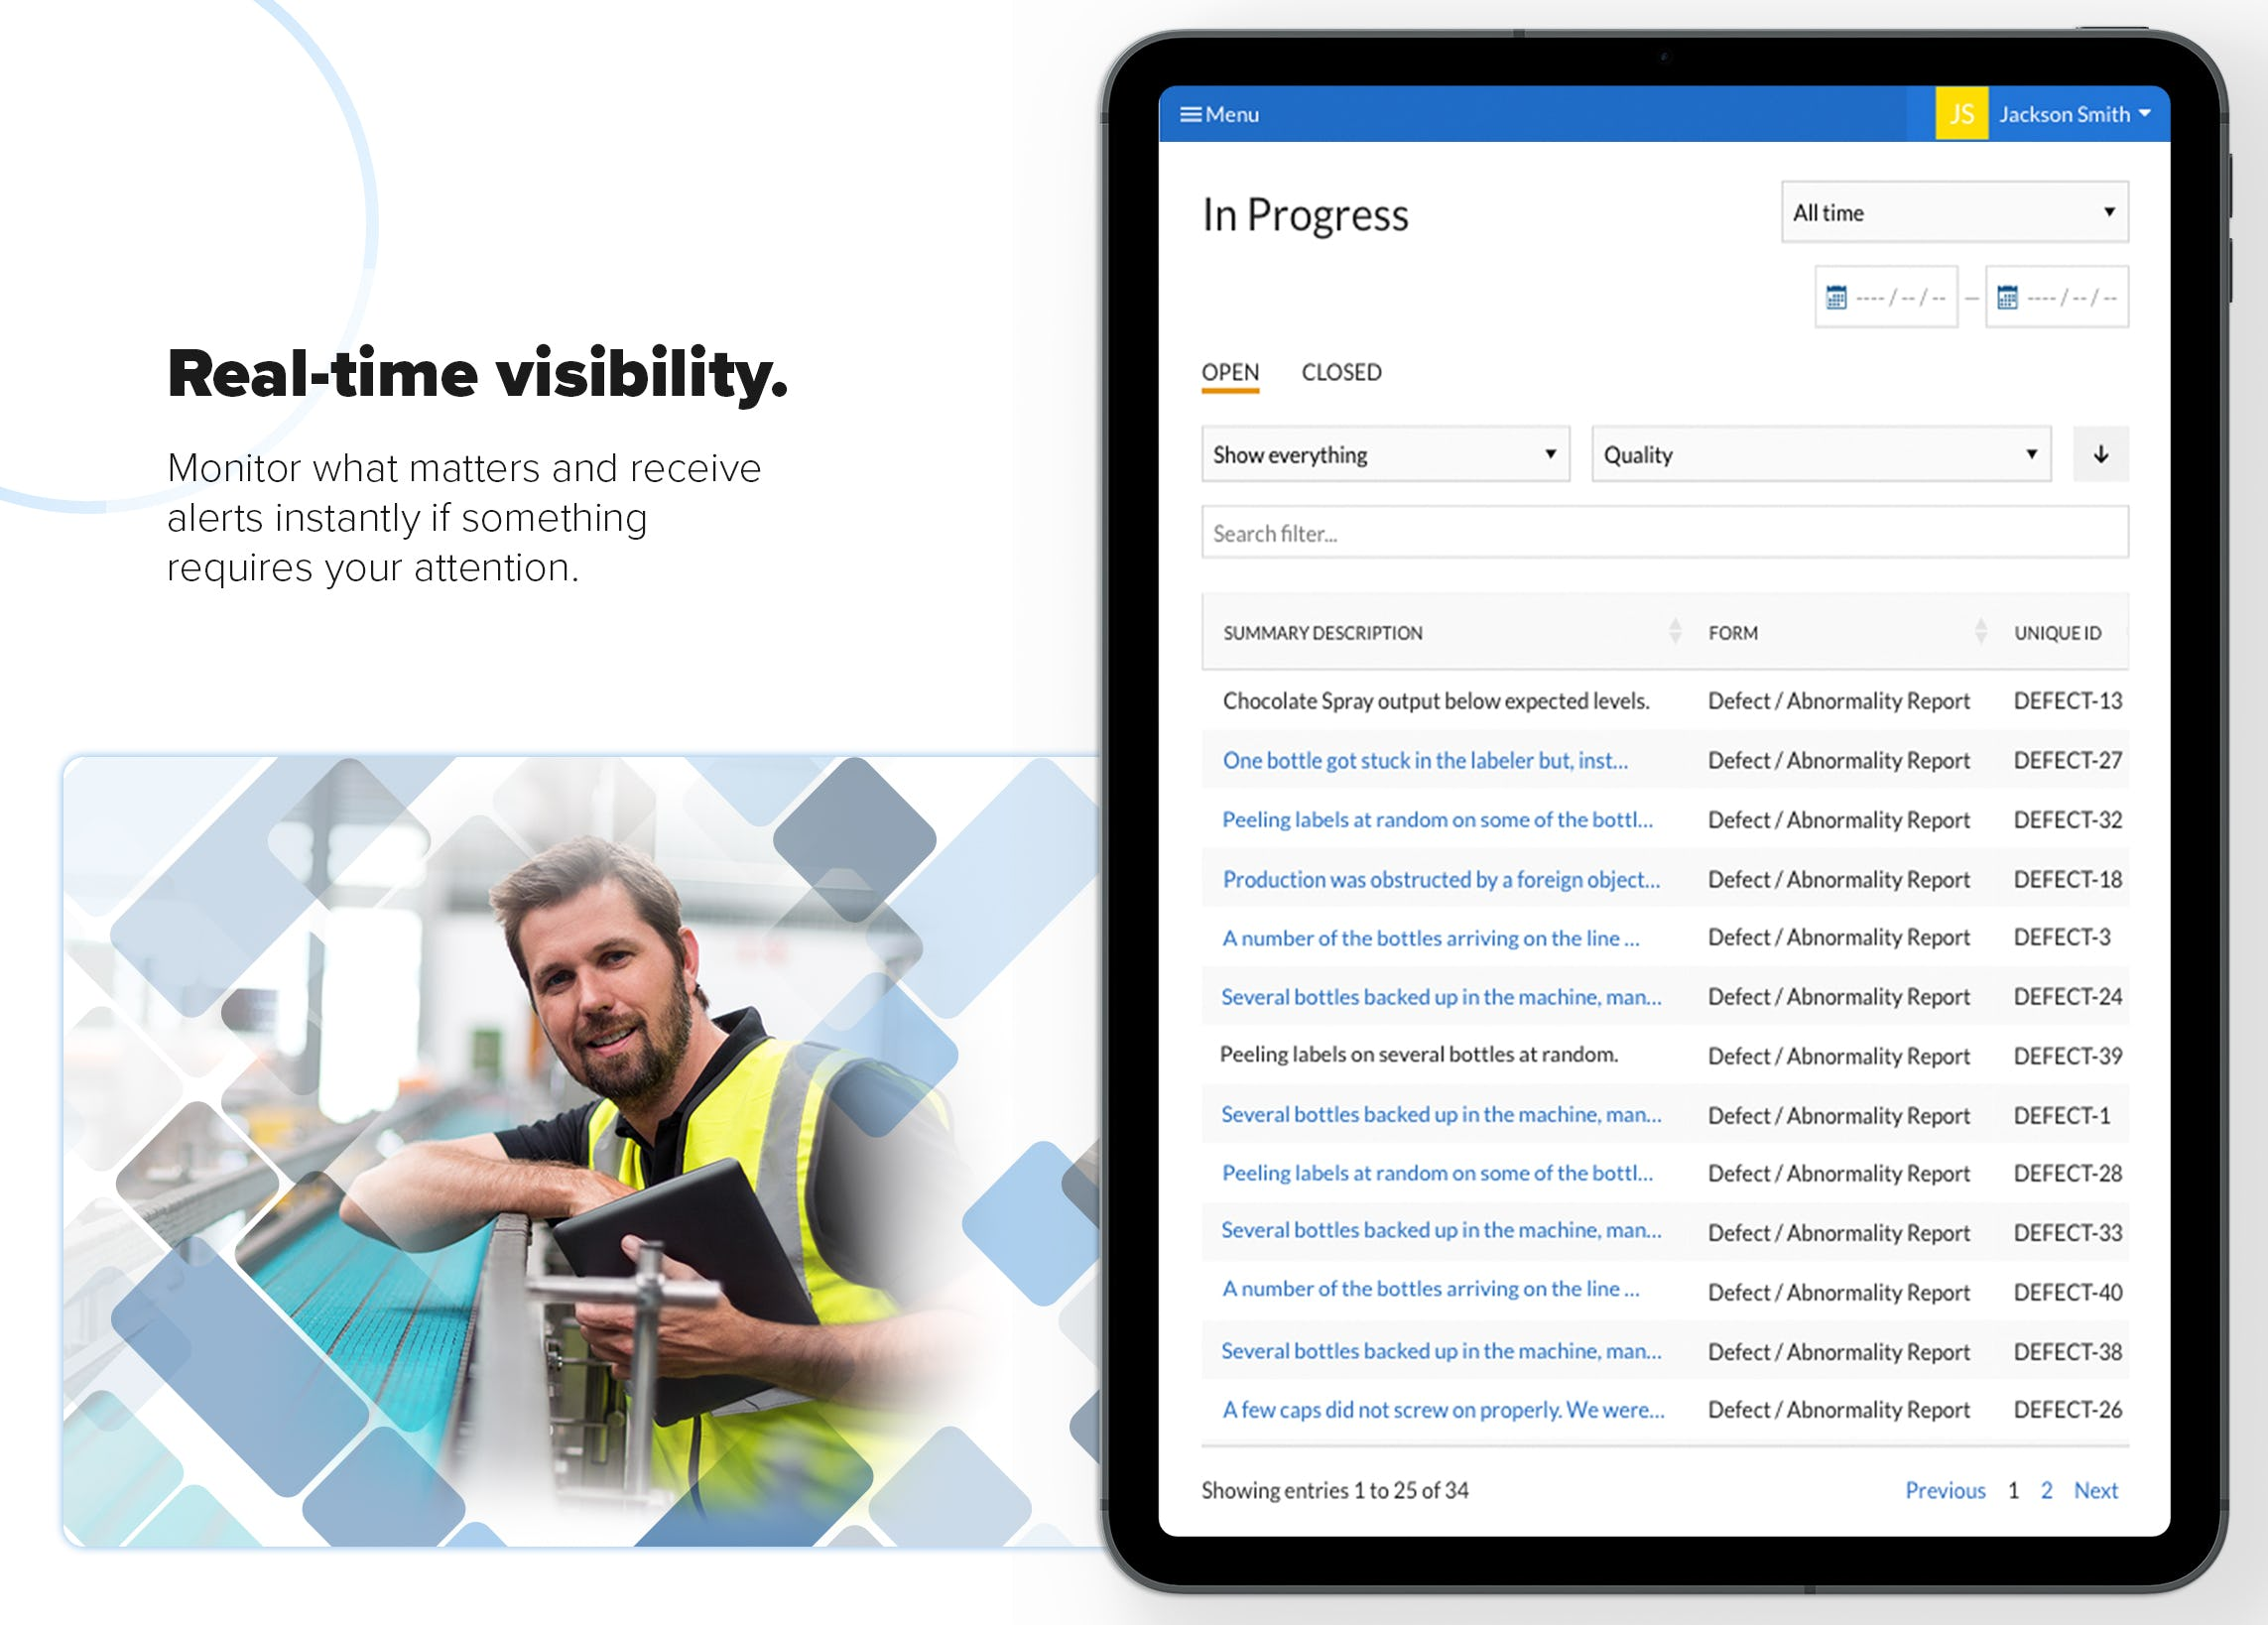 Real-time visibility   Monitor what matters and receive alerts instantly if something requires your attention.